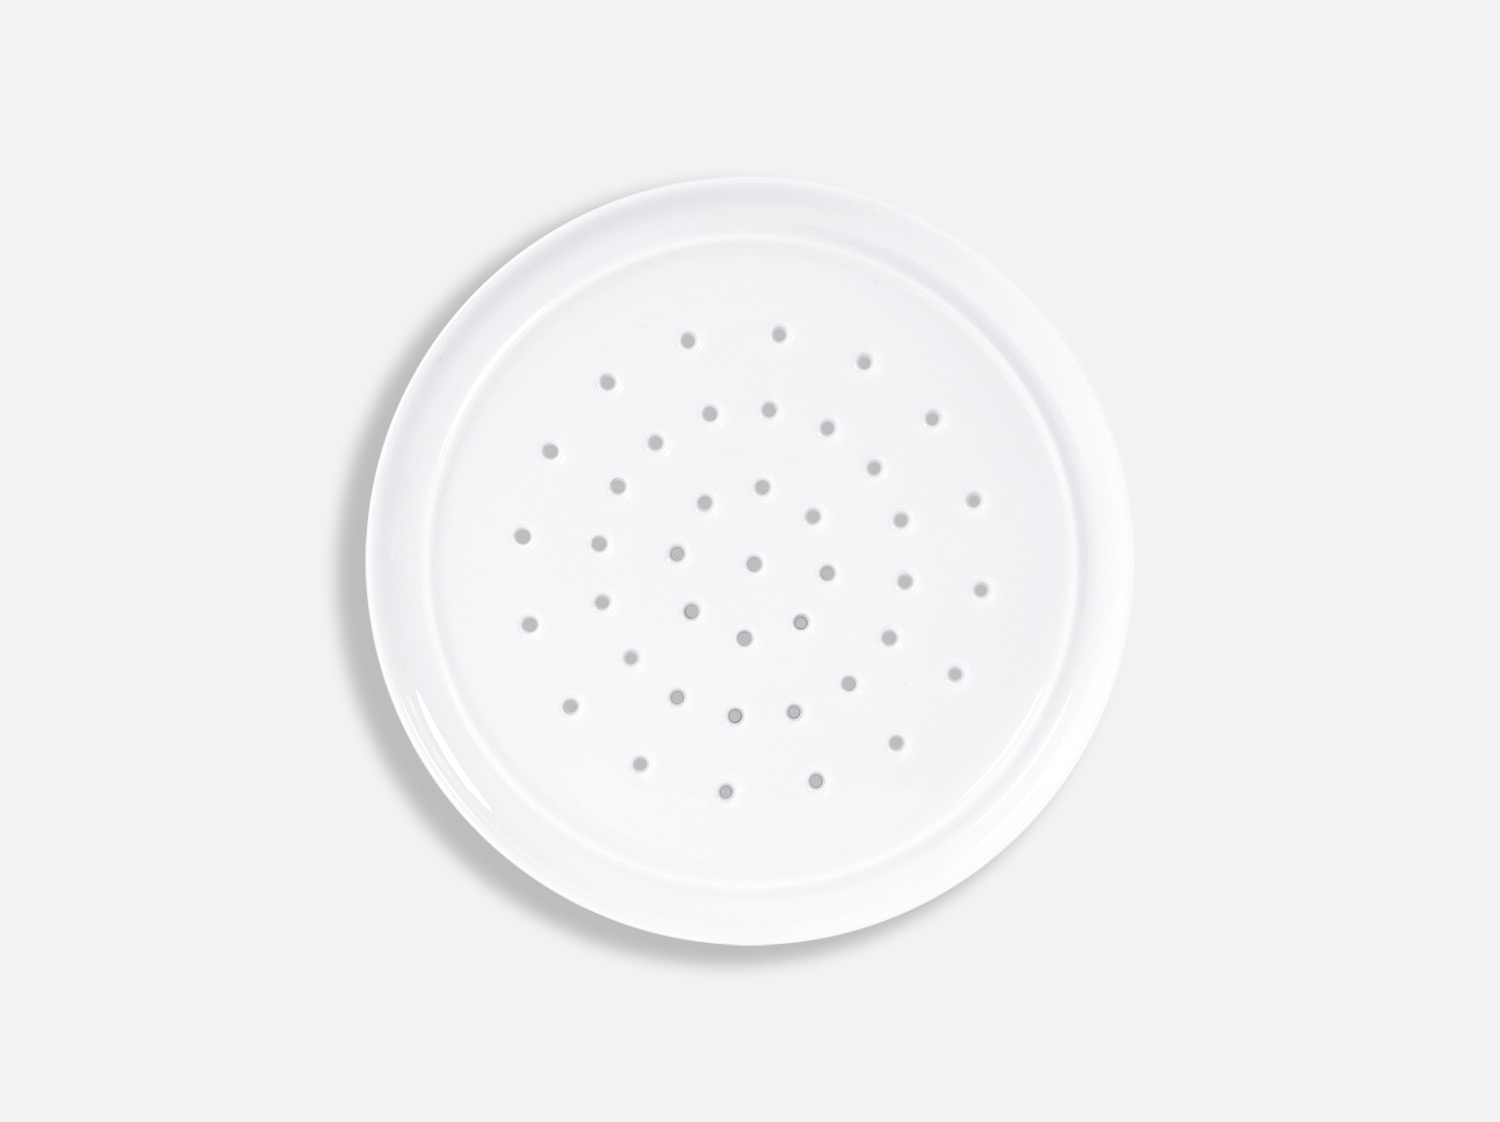 Grille 18 cm en porcelaine de la collection FUSION BLANC Bernardaud